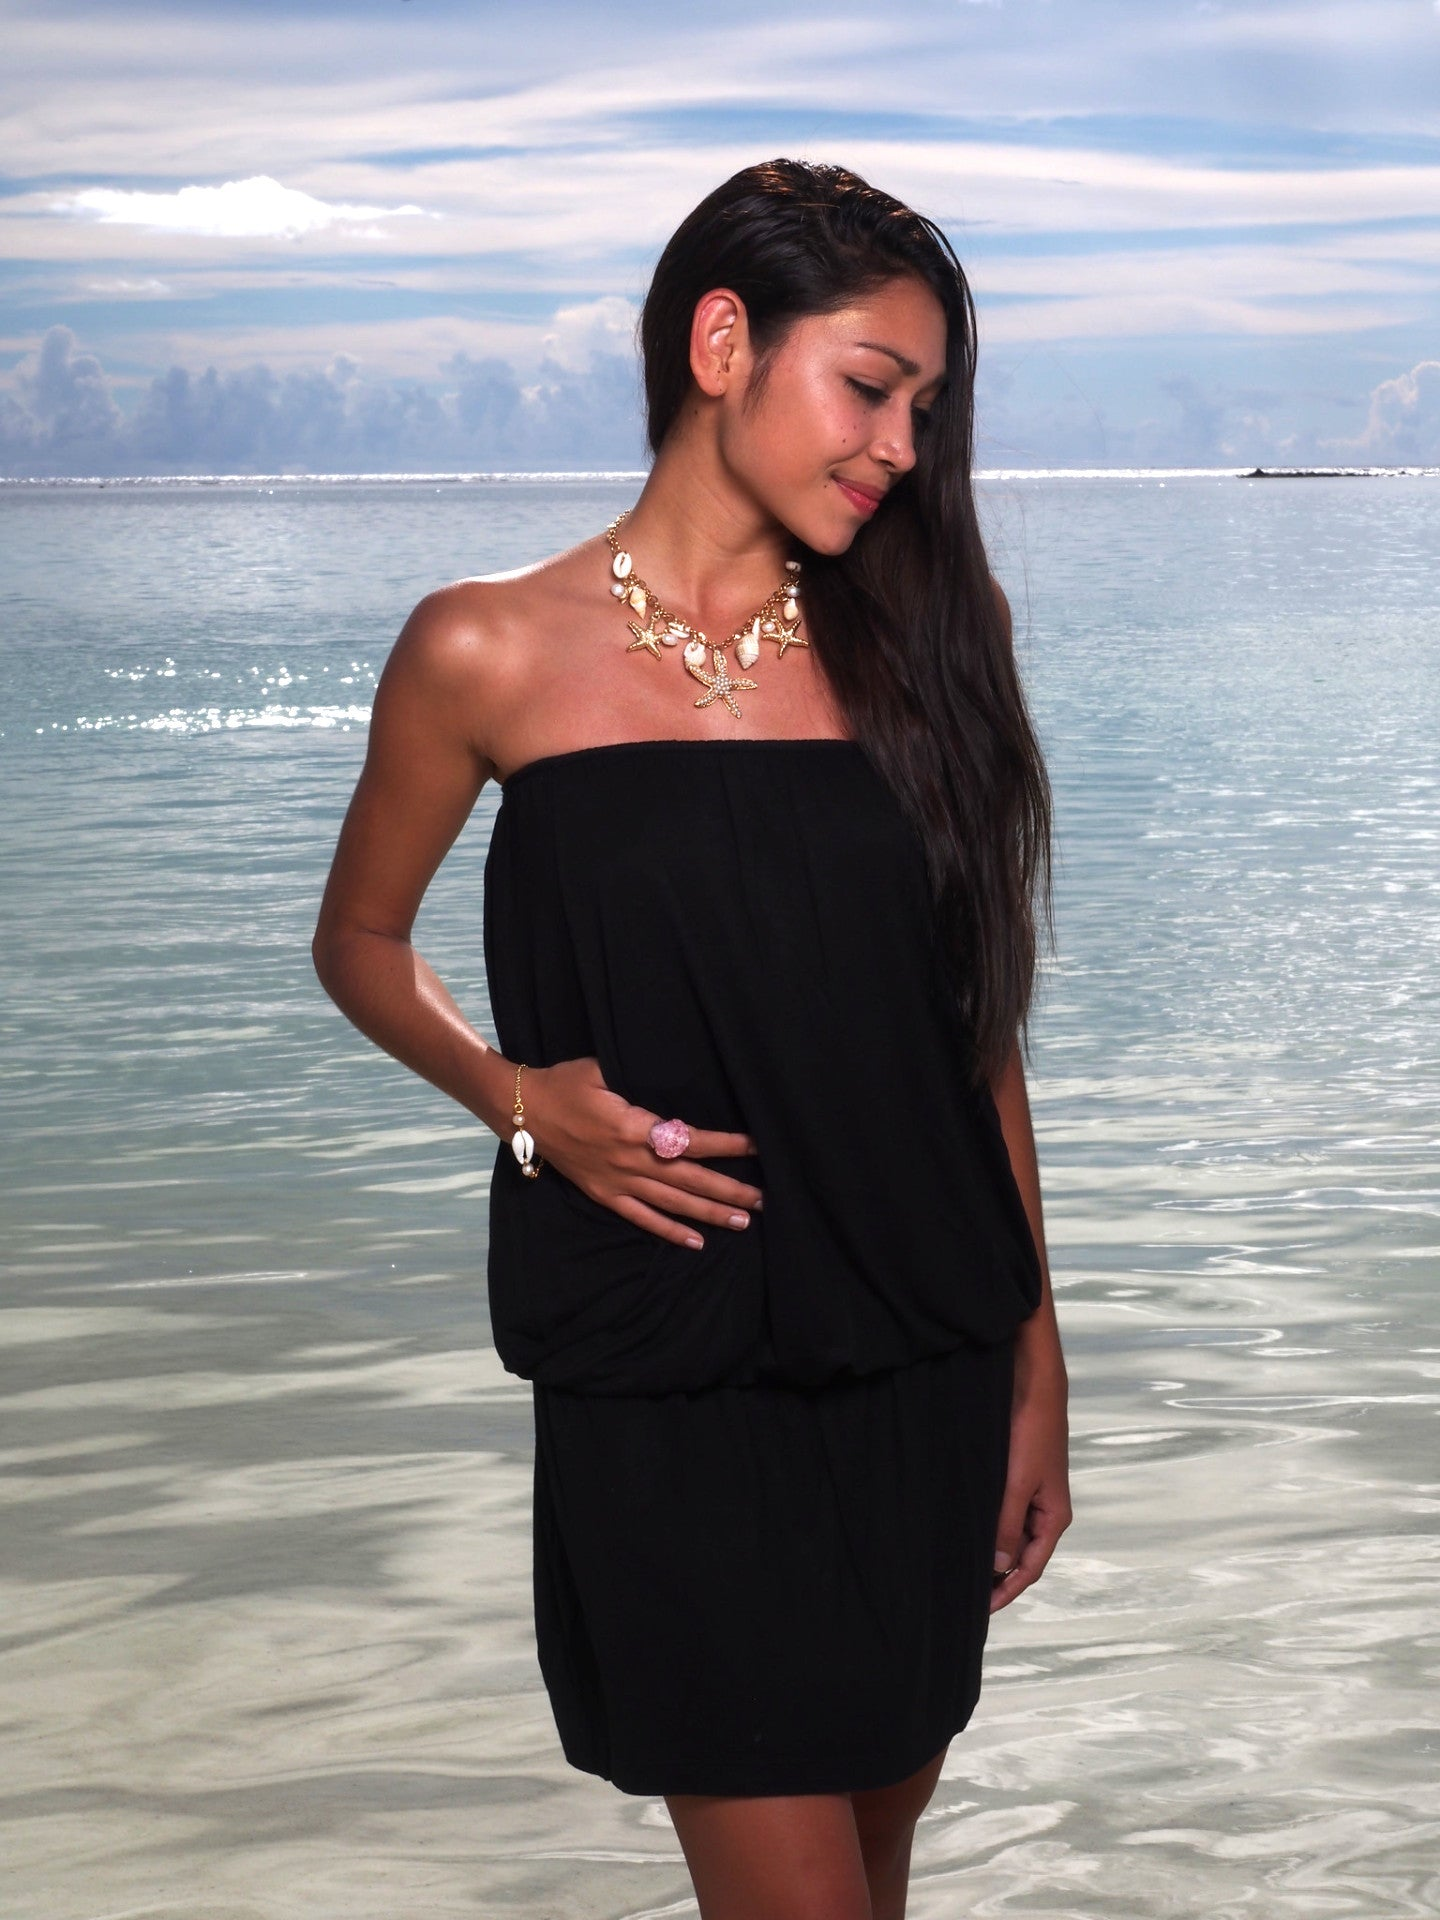 Chamorrita Swimwear Short Dress. Vida Local Ocean Shell Jewelry. Photos by Norman Taruc.  Model Markisha Lunschin.